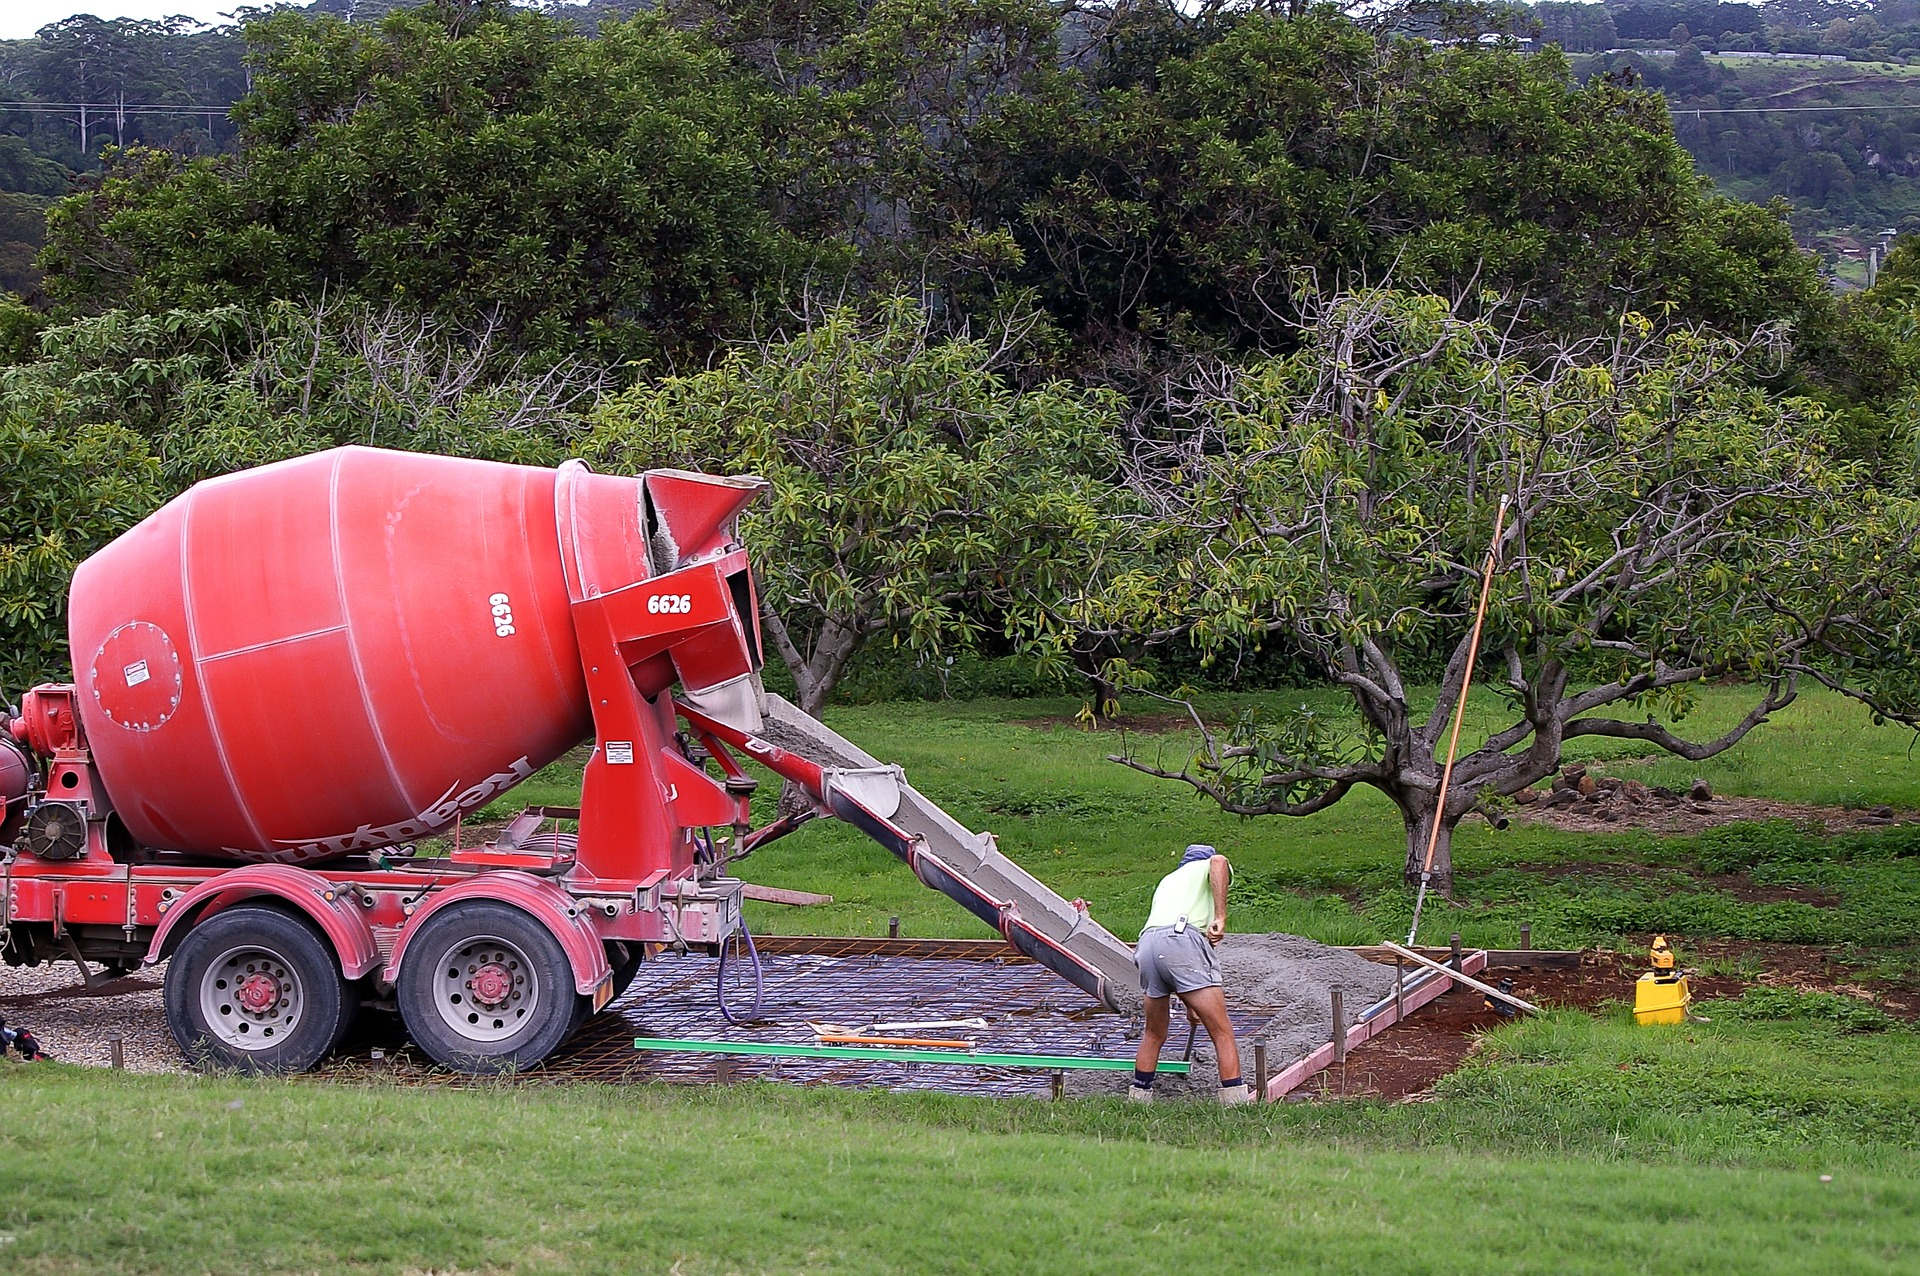 A red cement truck pours concrete with worker spreading the mix after the design and commencement of a termite protection systems.